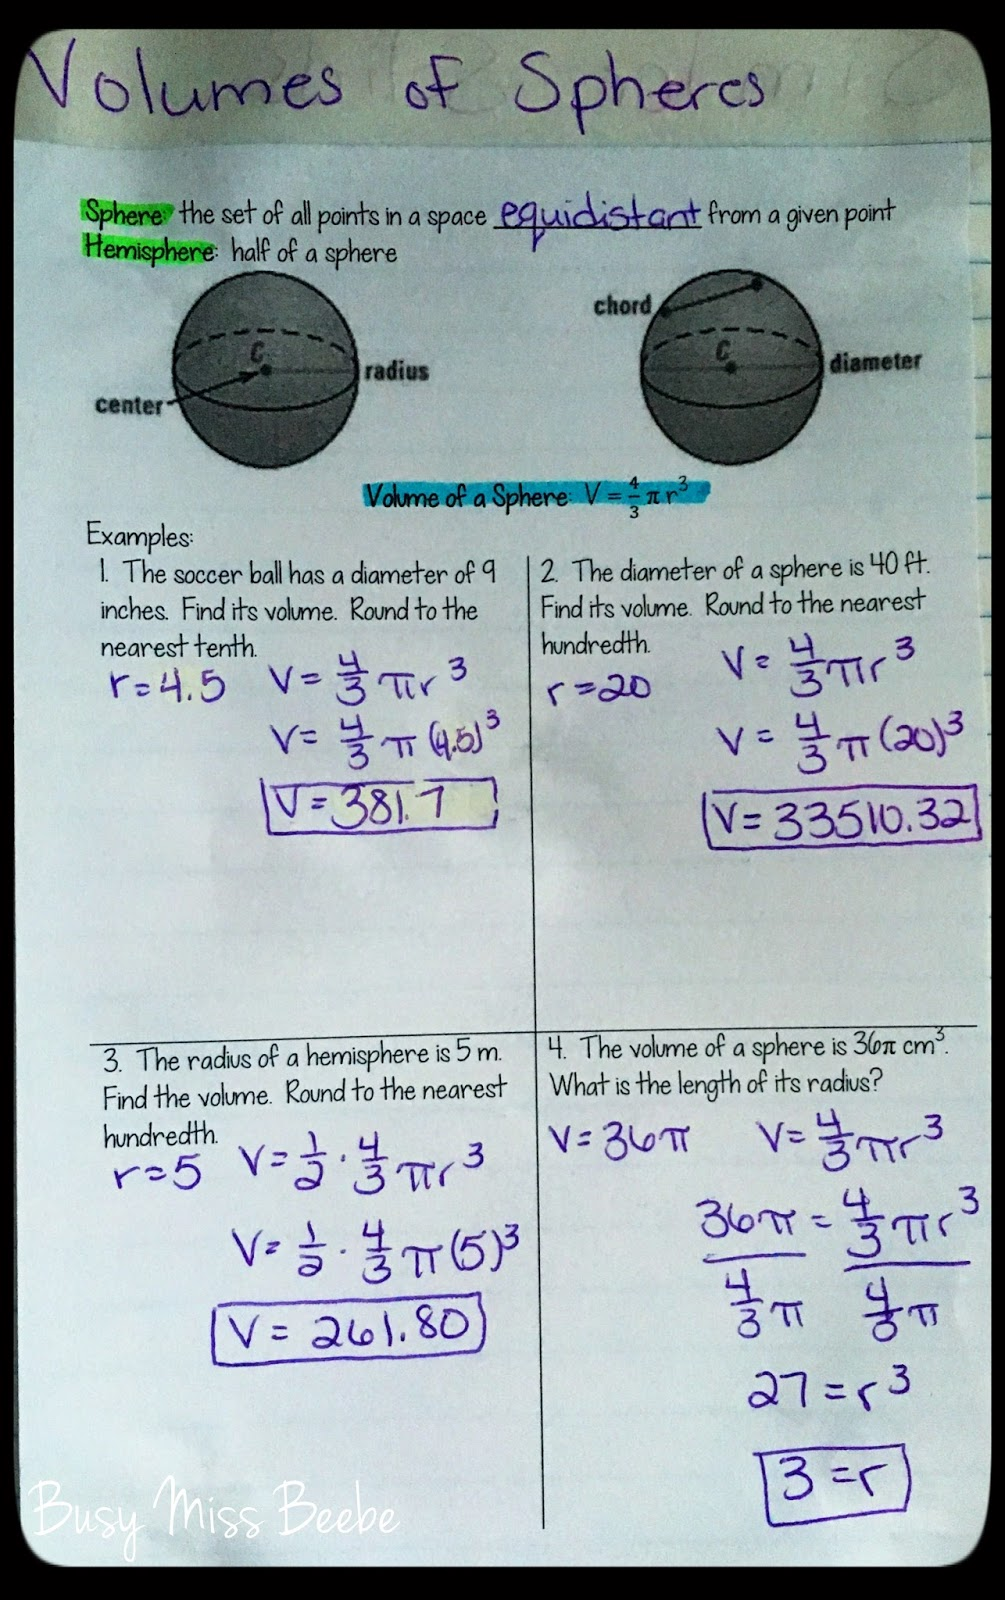 And The Volume Of Spheres